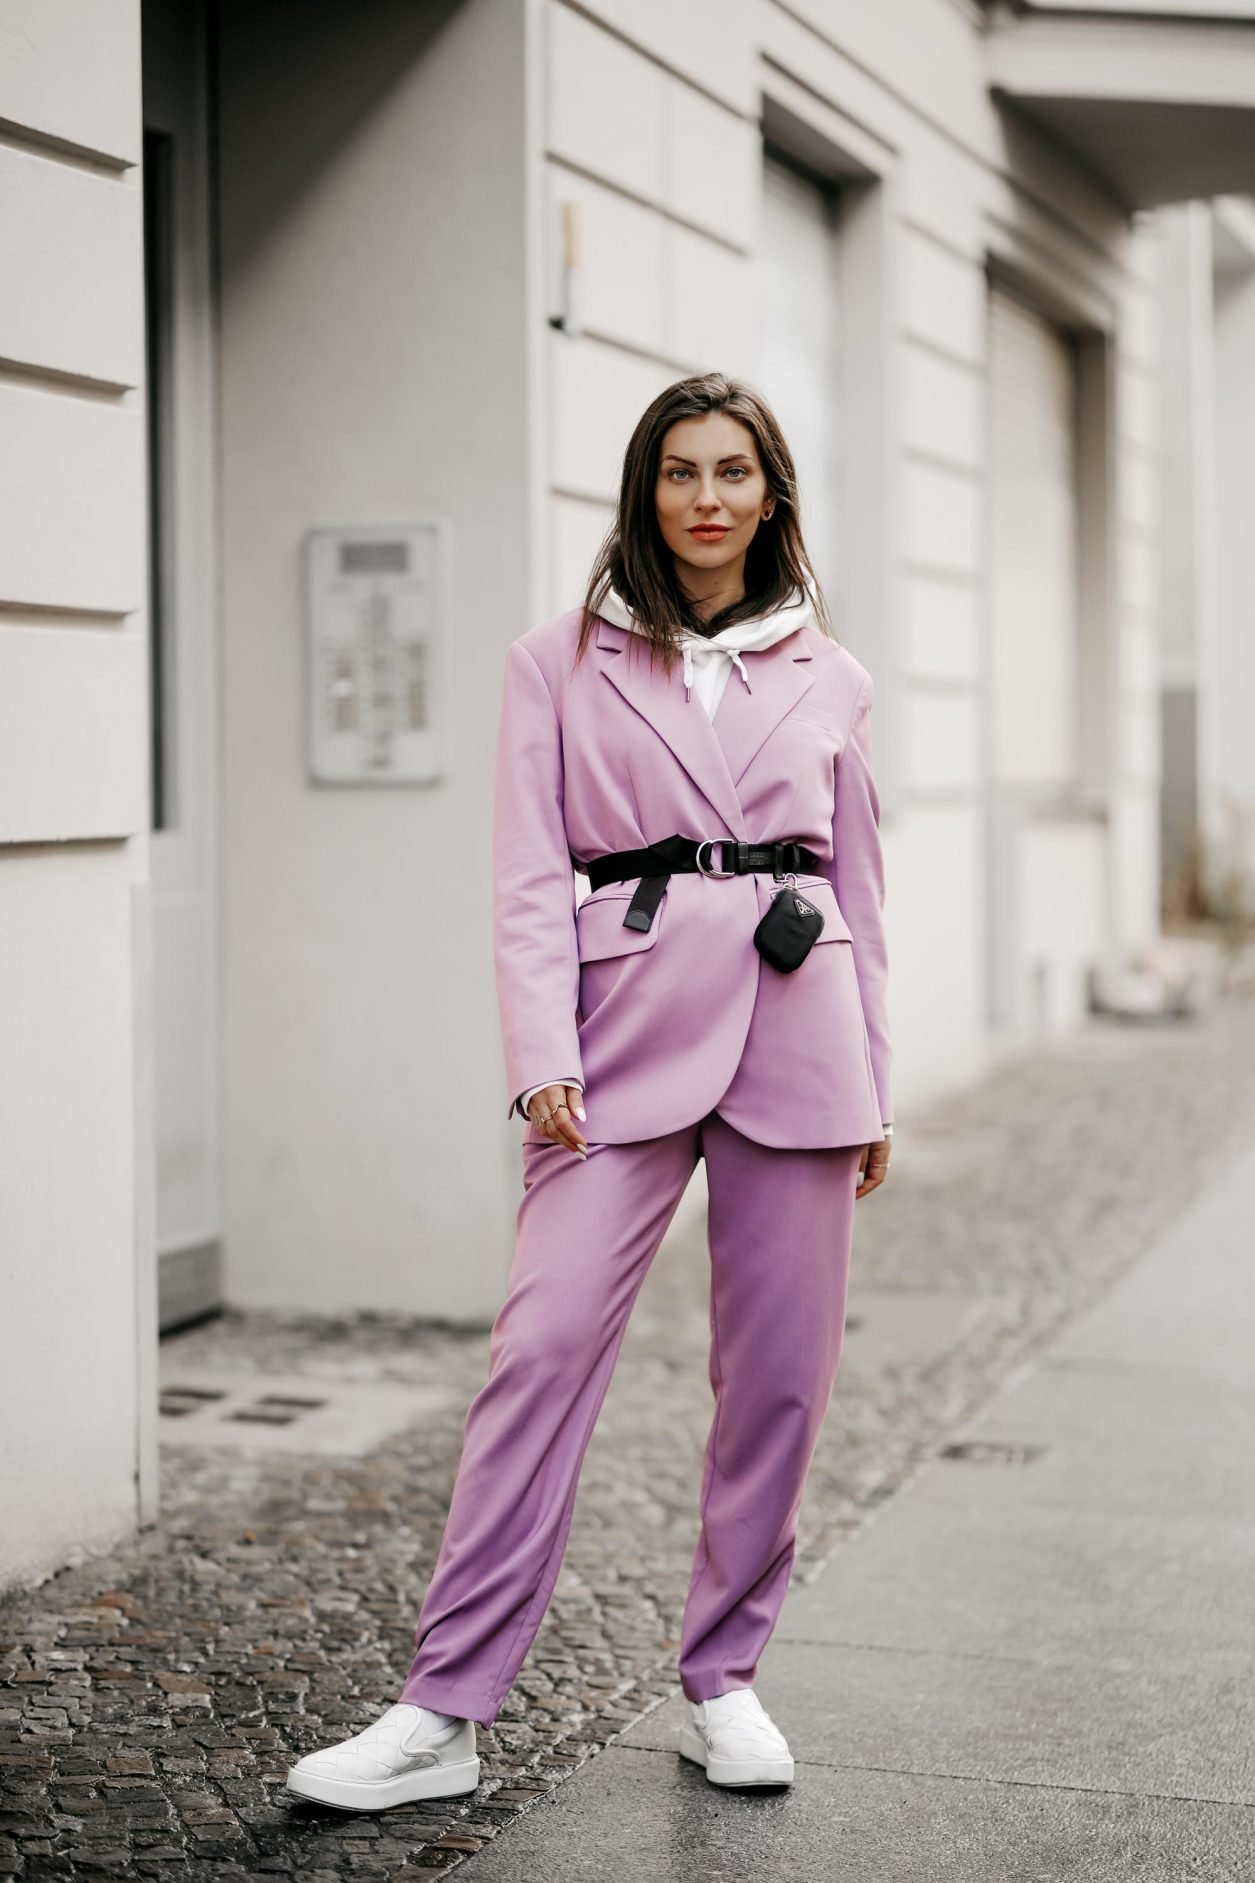 Streetstyle outfit by fashion blogger from Berlin, Germany | Minimalistic everyday outfit, business casual, spring suit ideas, spring colors, ss21 wardrobe must-haves, wearing lilac Market suit, Prada belt with belt-bag, white nail polish, white leather loafer, white hoodie